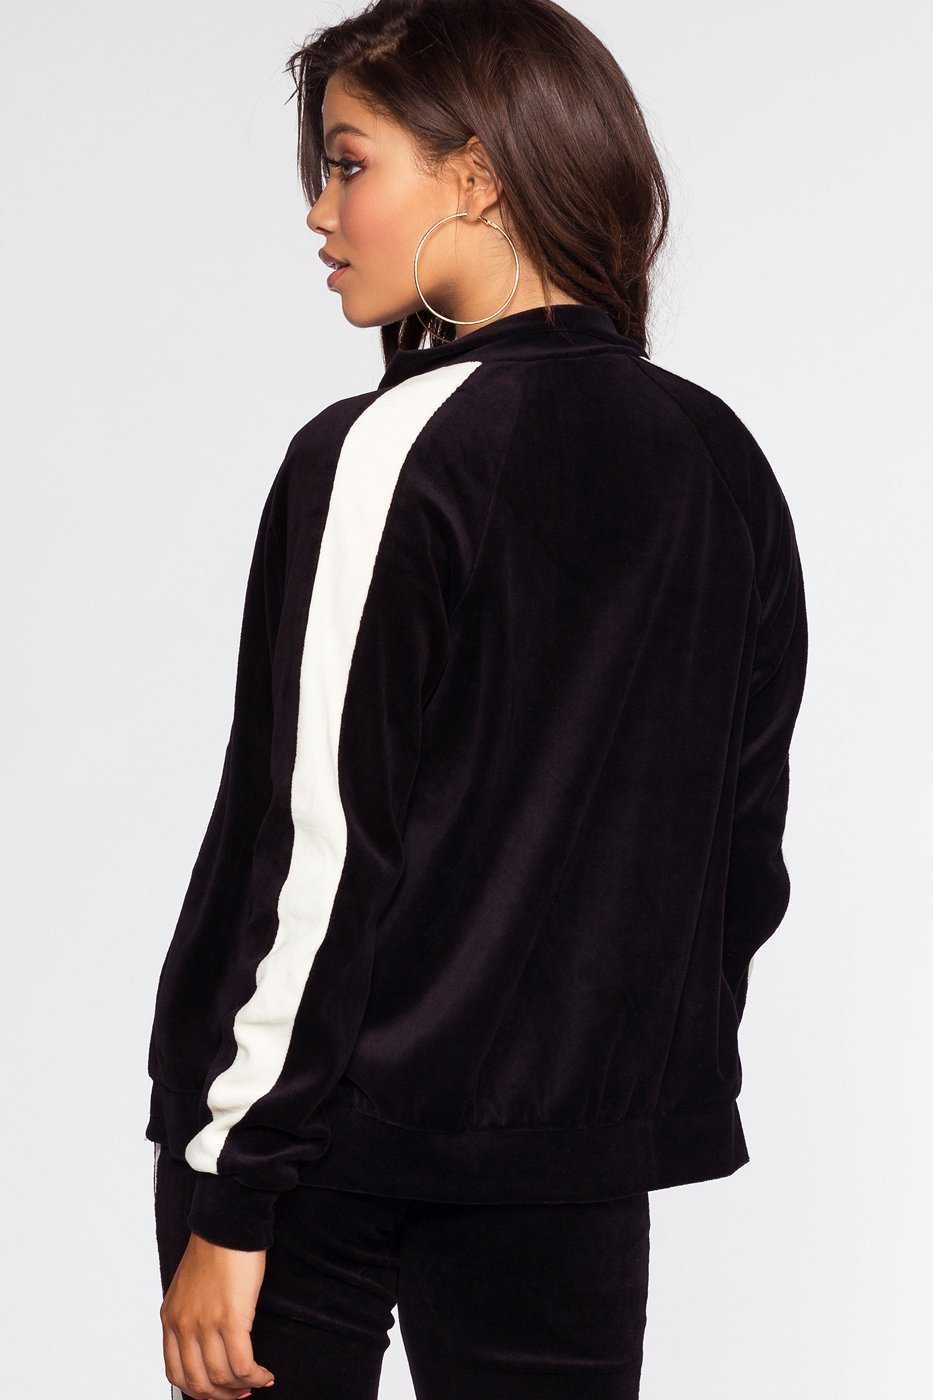 Jackets - Track It Jacket - Black